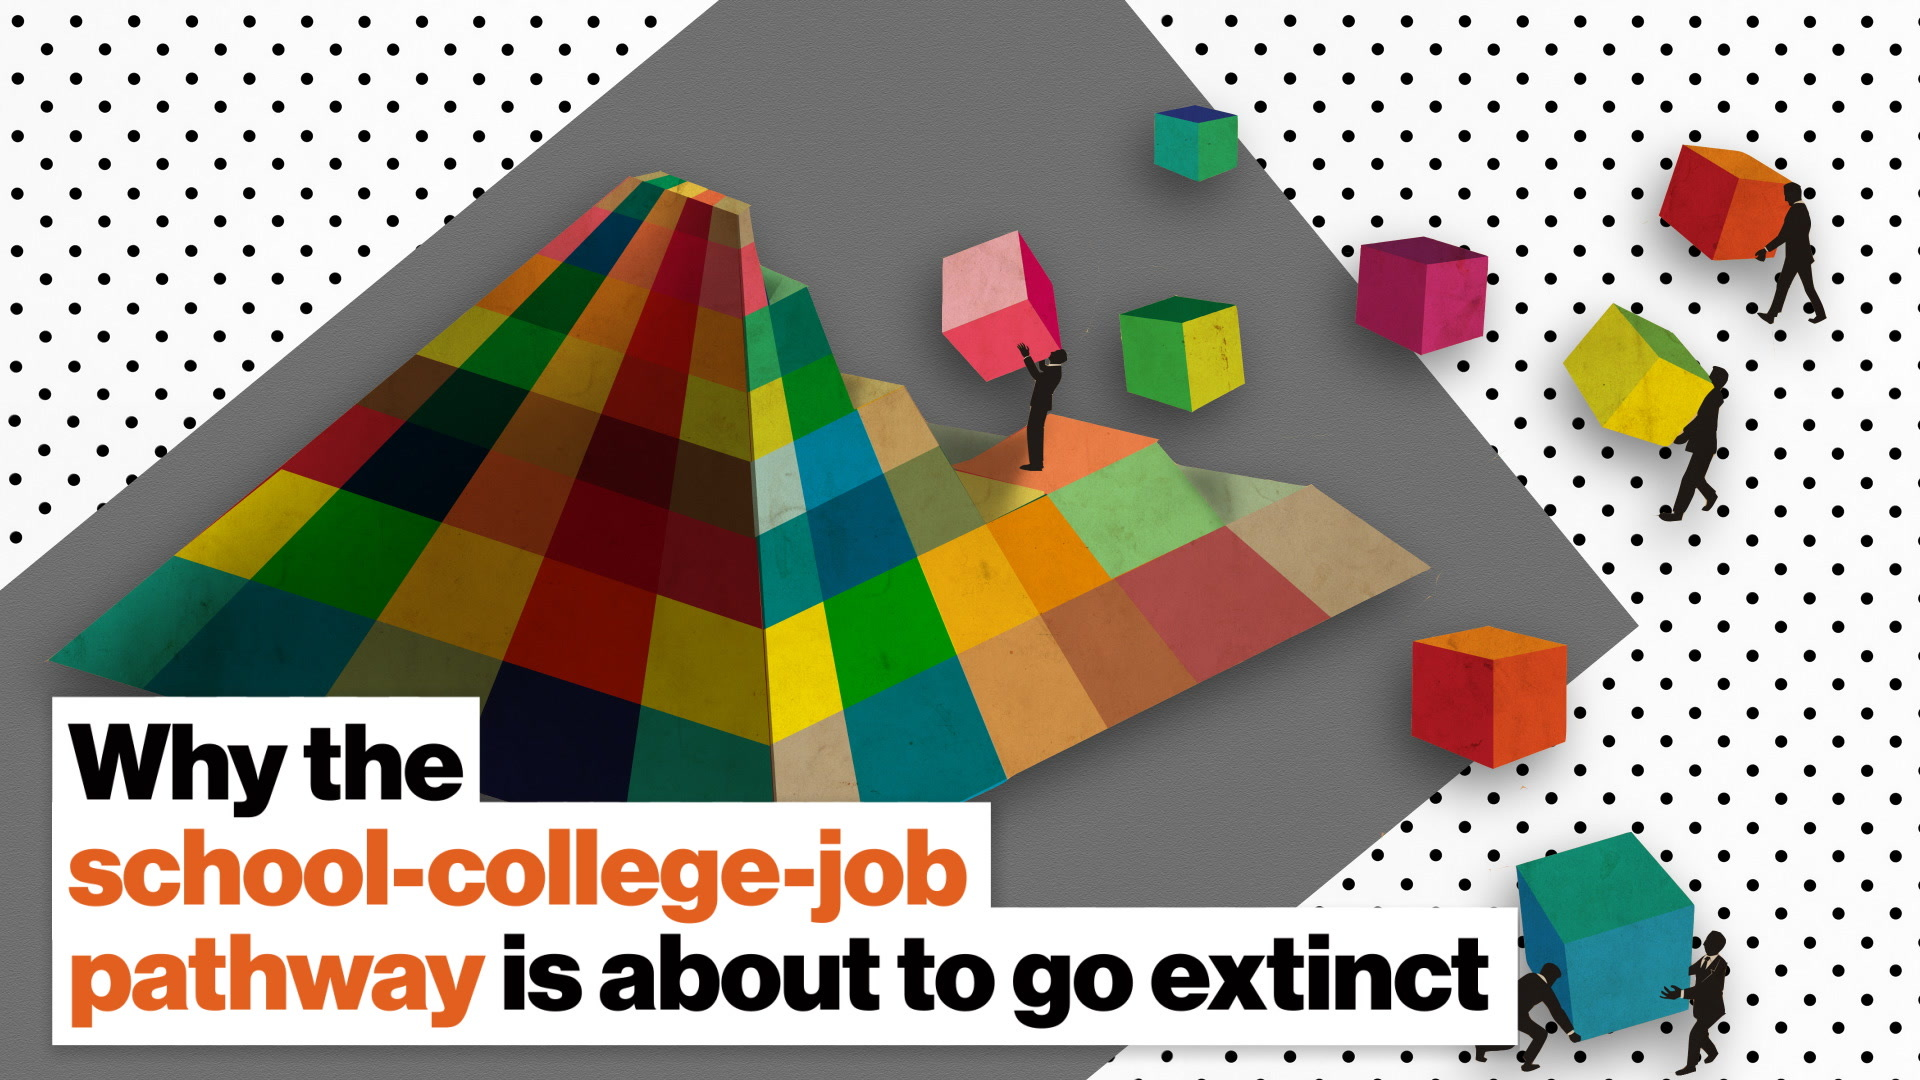 Why the school-college-job pathway is about to go extinct